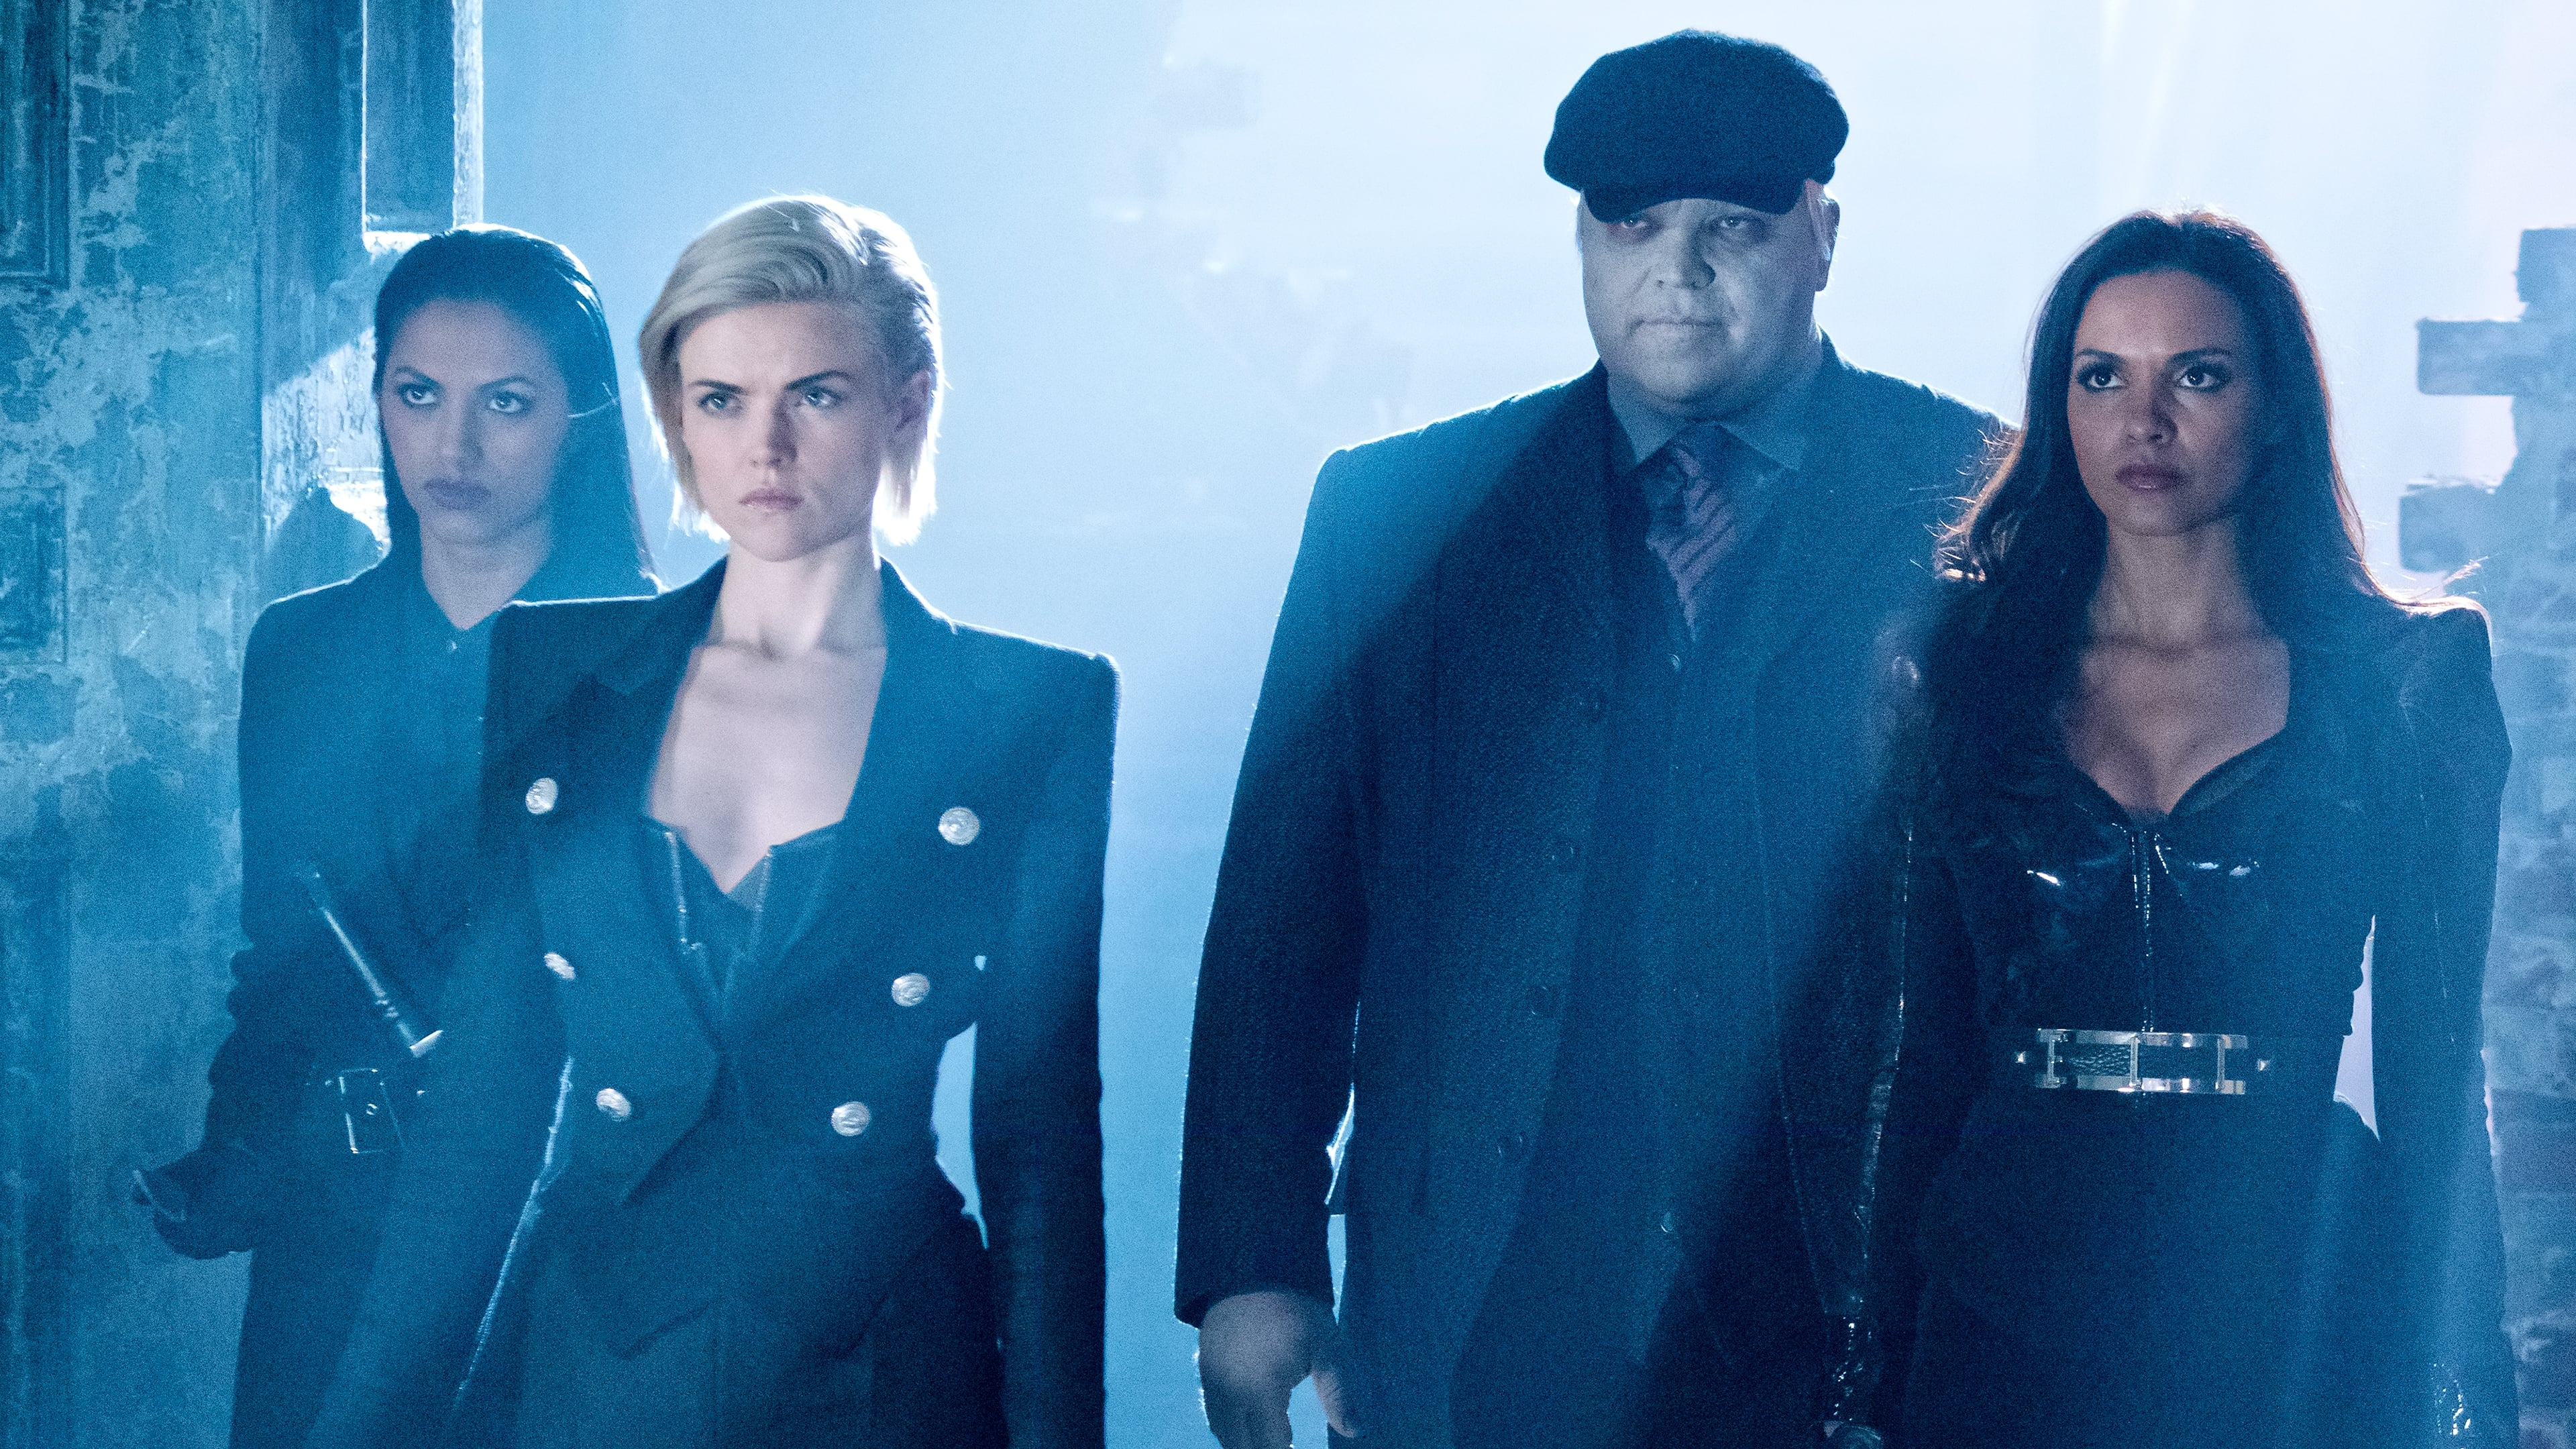 Gotham - Season 4 Episode 21 : A Dark Knight: One Bad Day